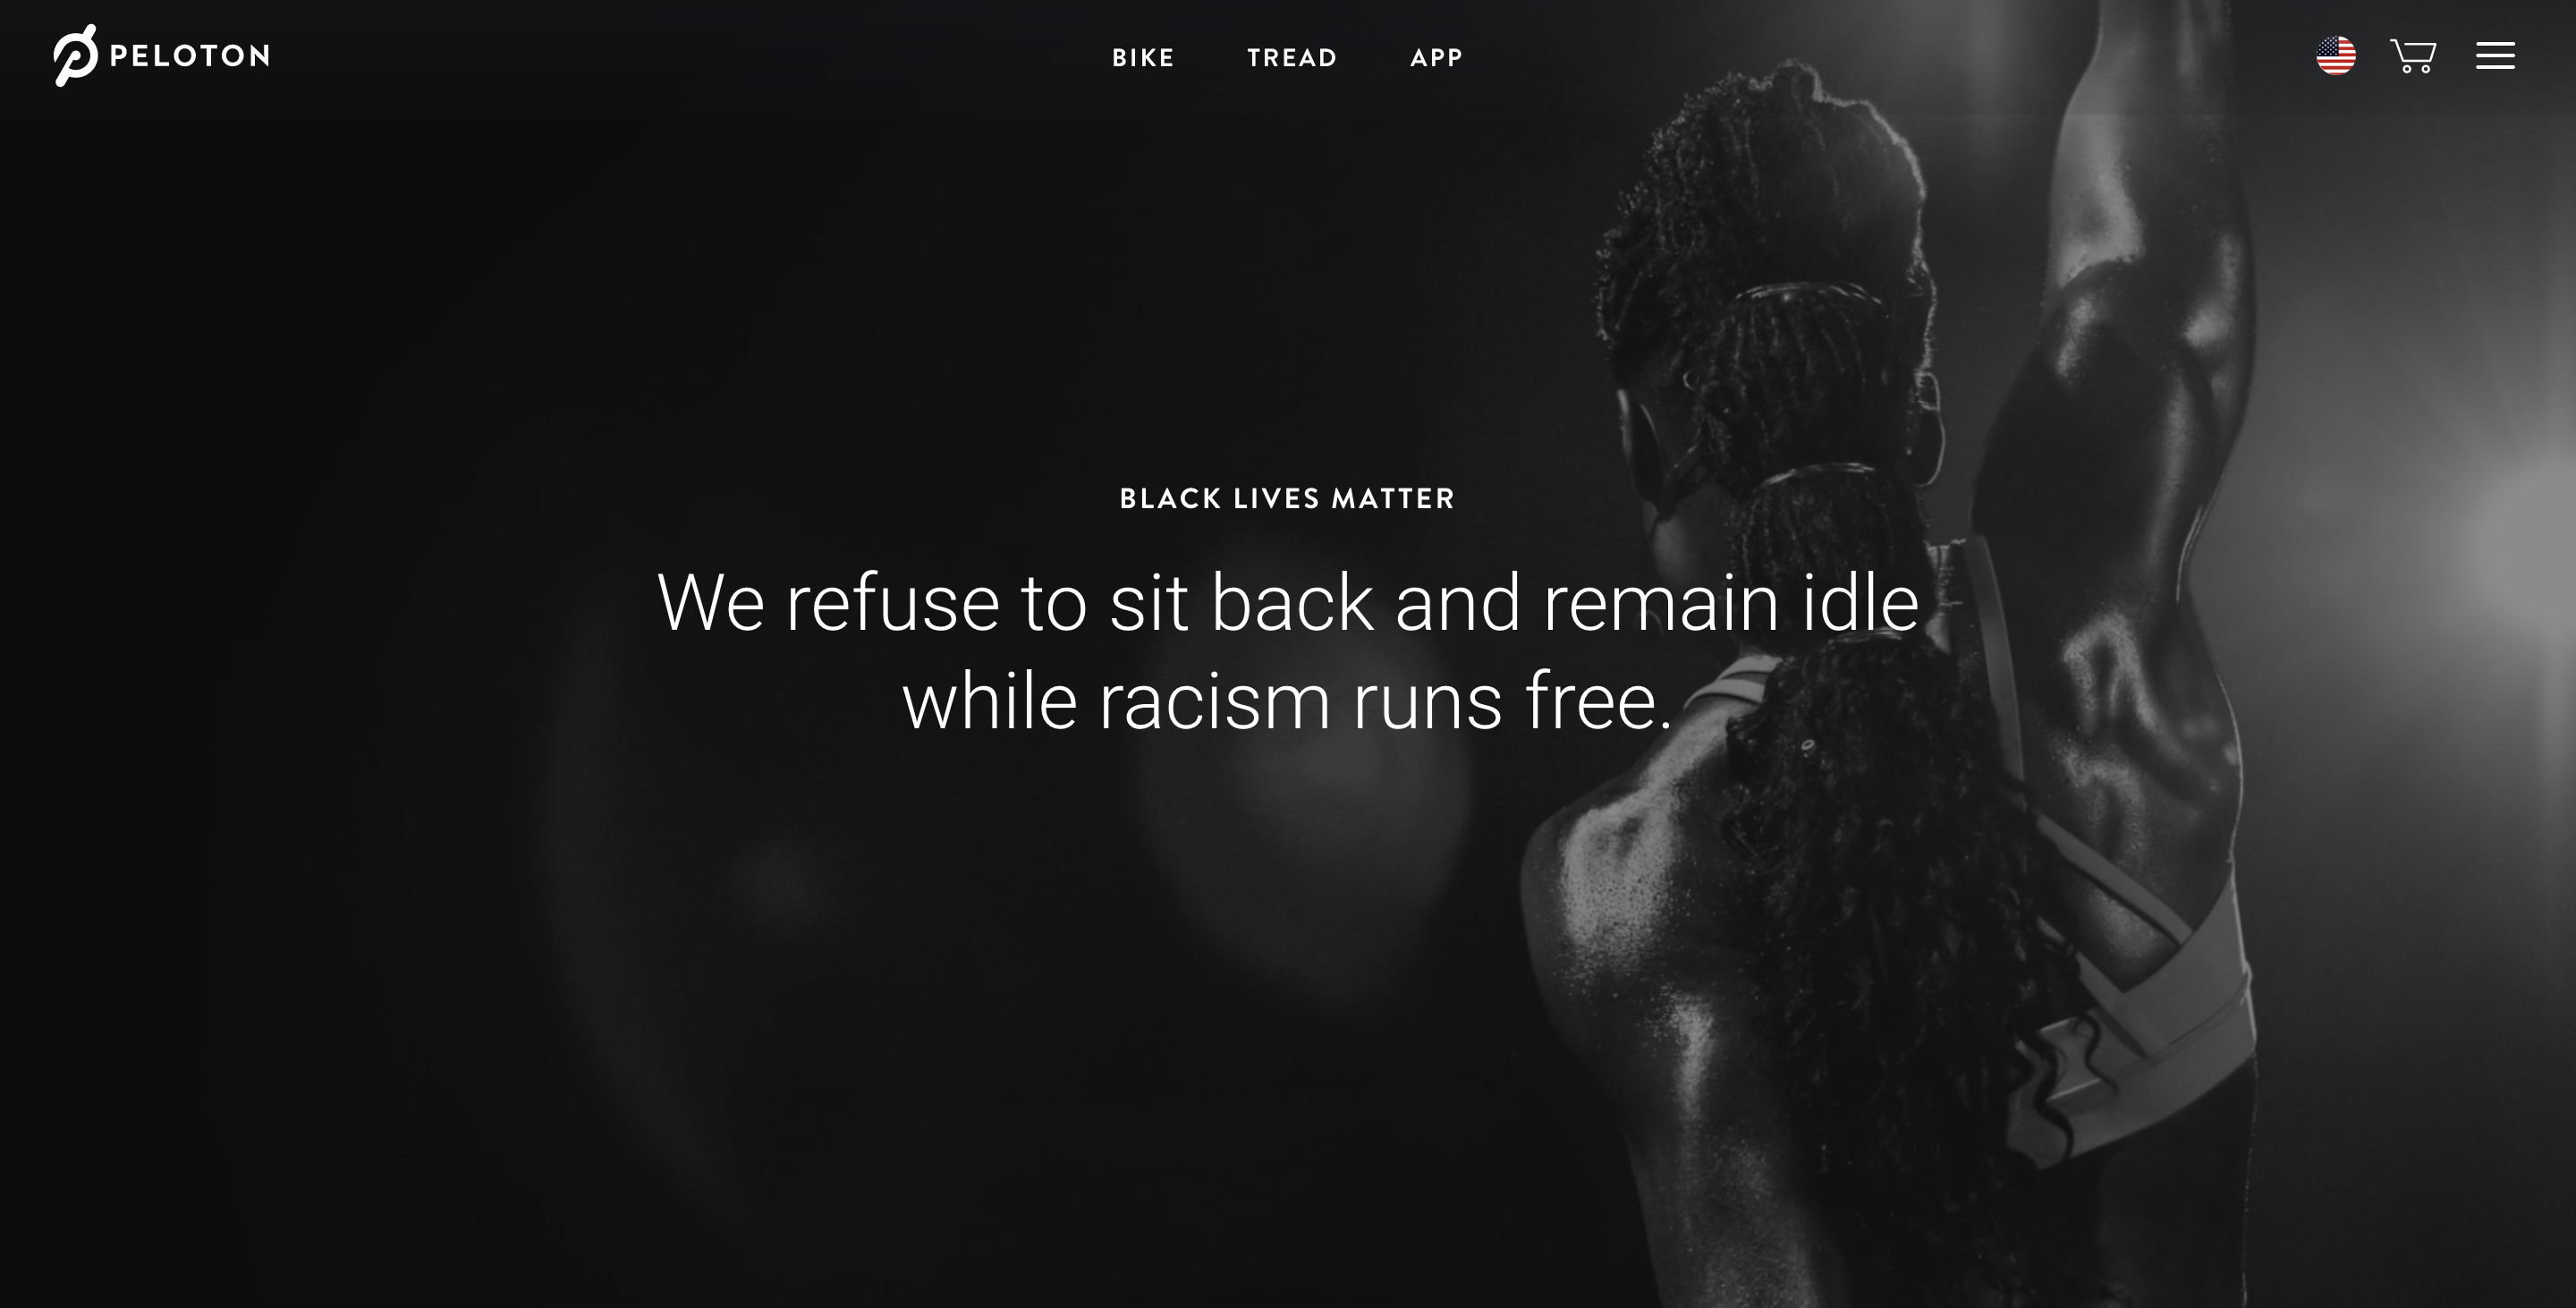 A screenshot of Peloton's website.